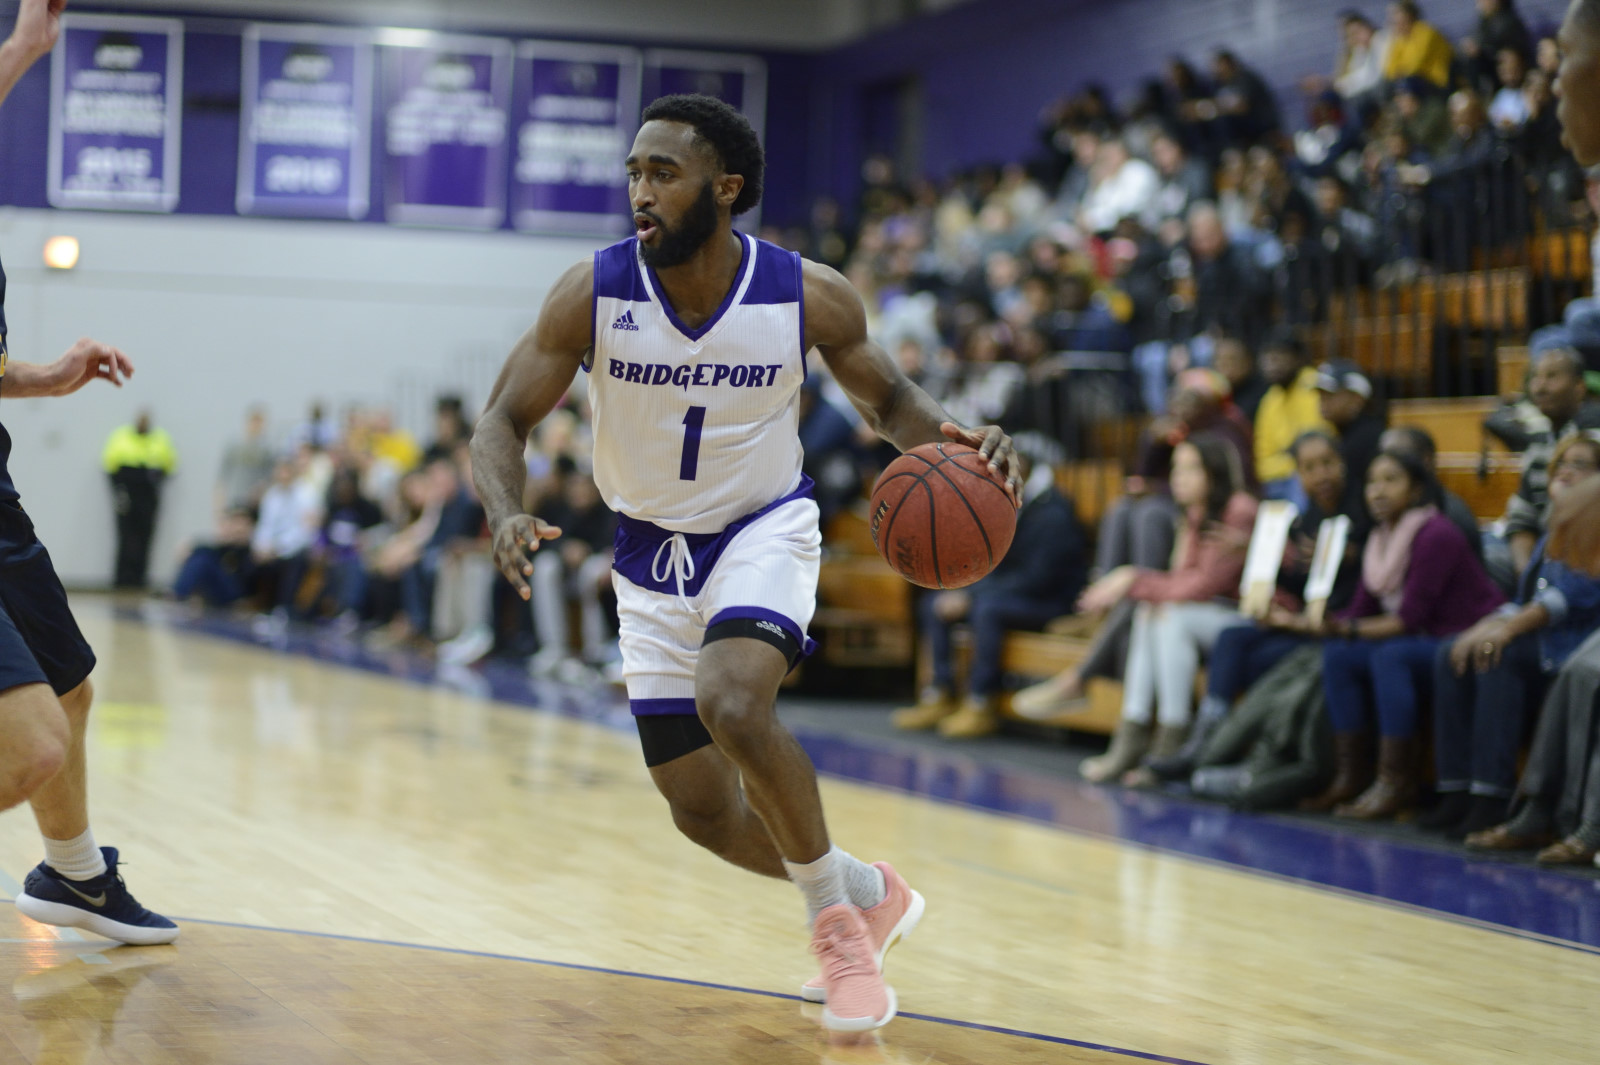 Men's Basketball Races Out To Big Lead And Holds On To Defeat Post University, 85-79